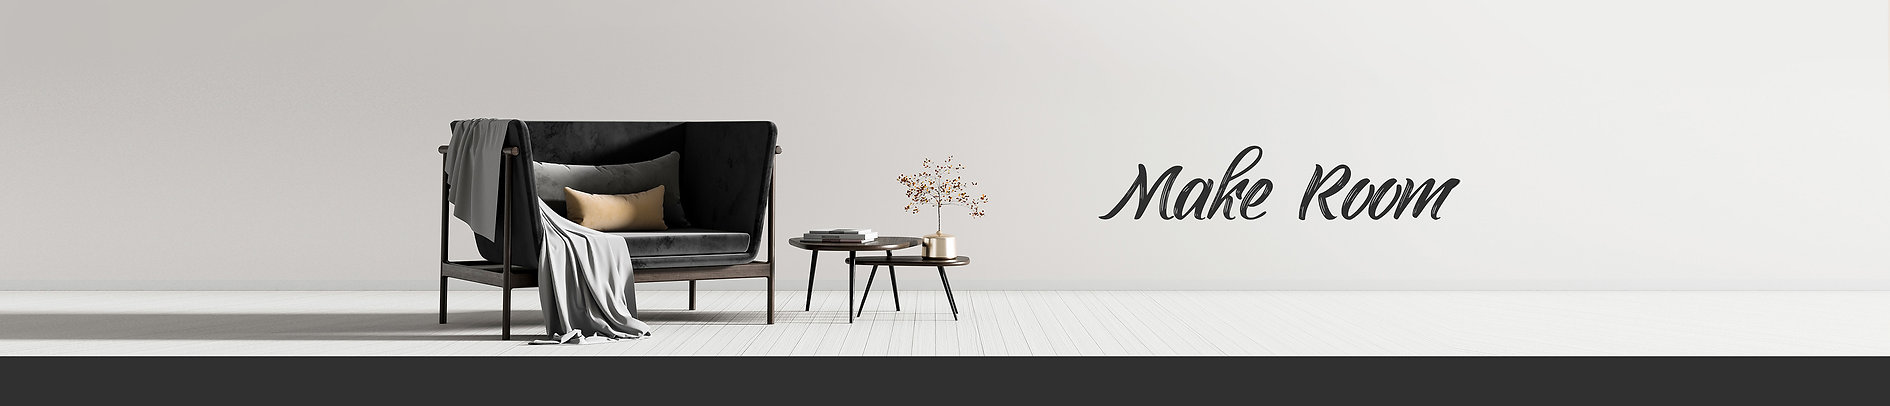 LG website_makeroom_header.jpg